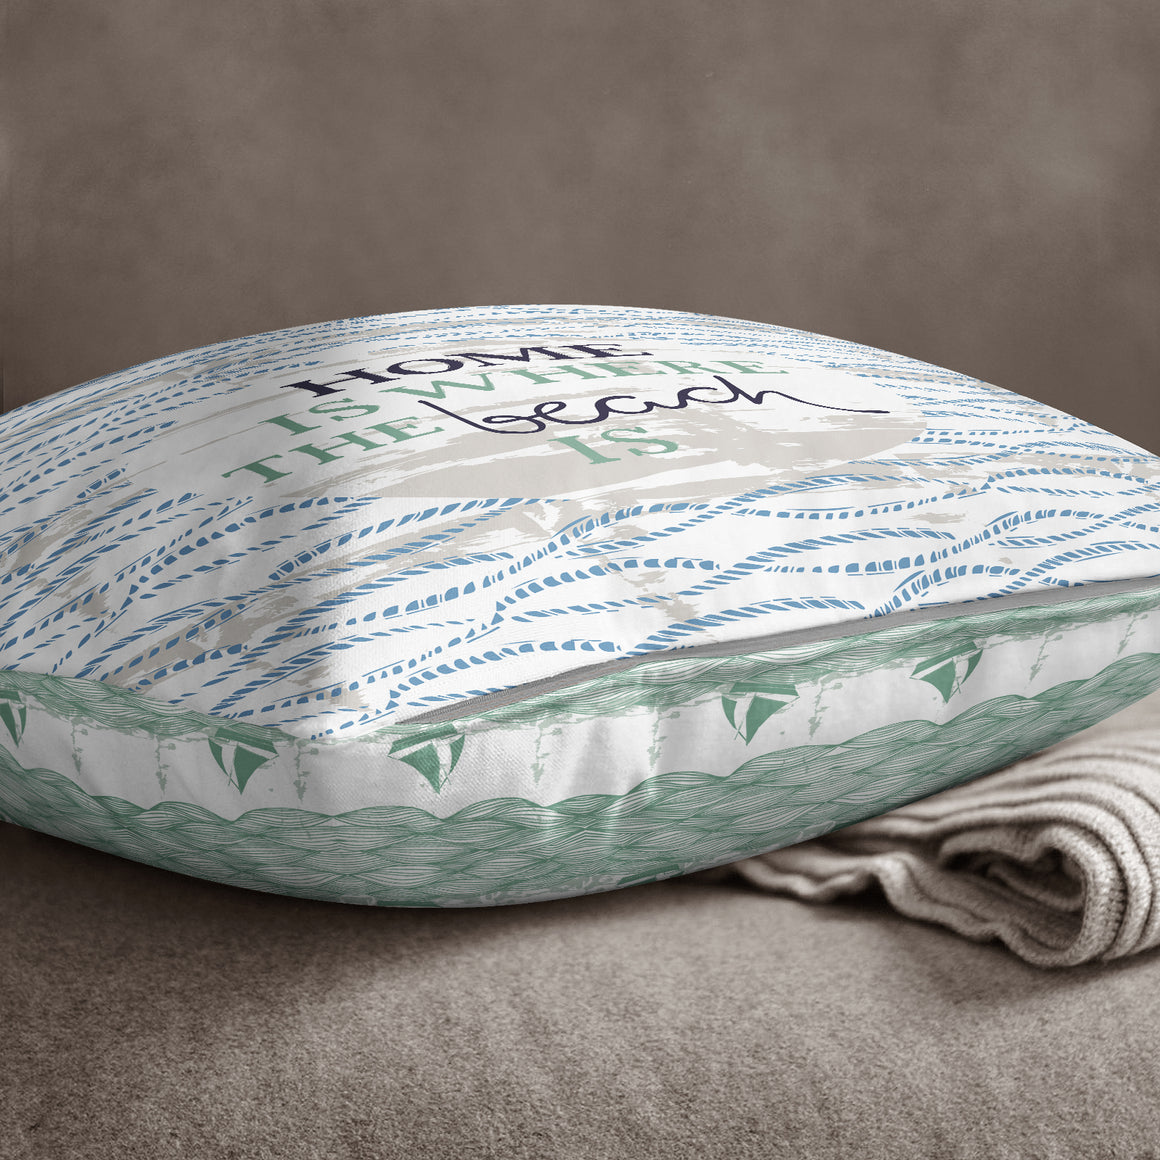 Home Is Where The Beach Is by Vicky Yorke Designs - 45 cm Cushion